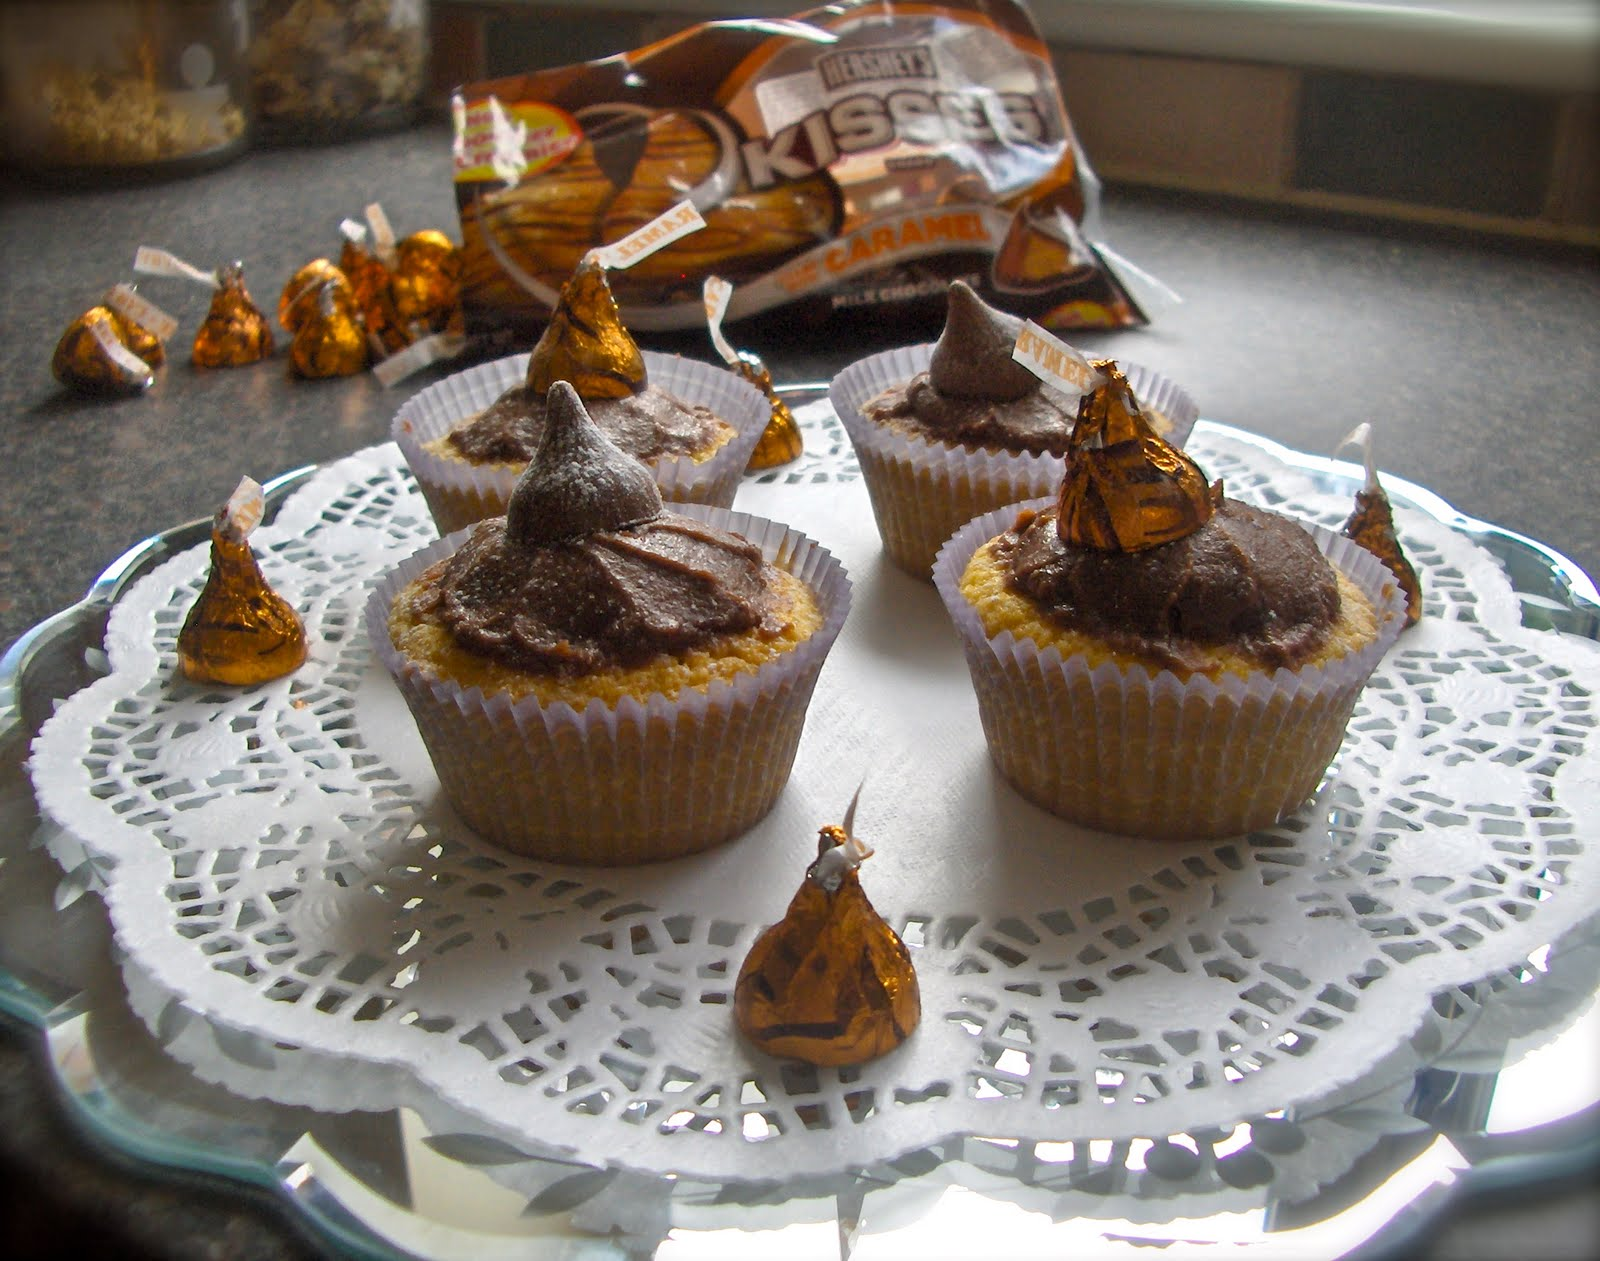 How To Make Chocolate Fairy Cakes Using Cocoa Powder